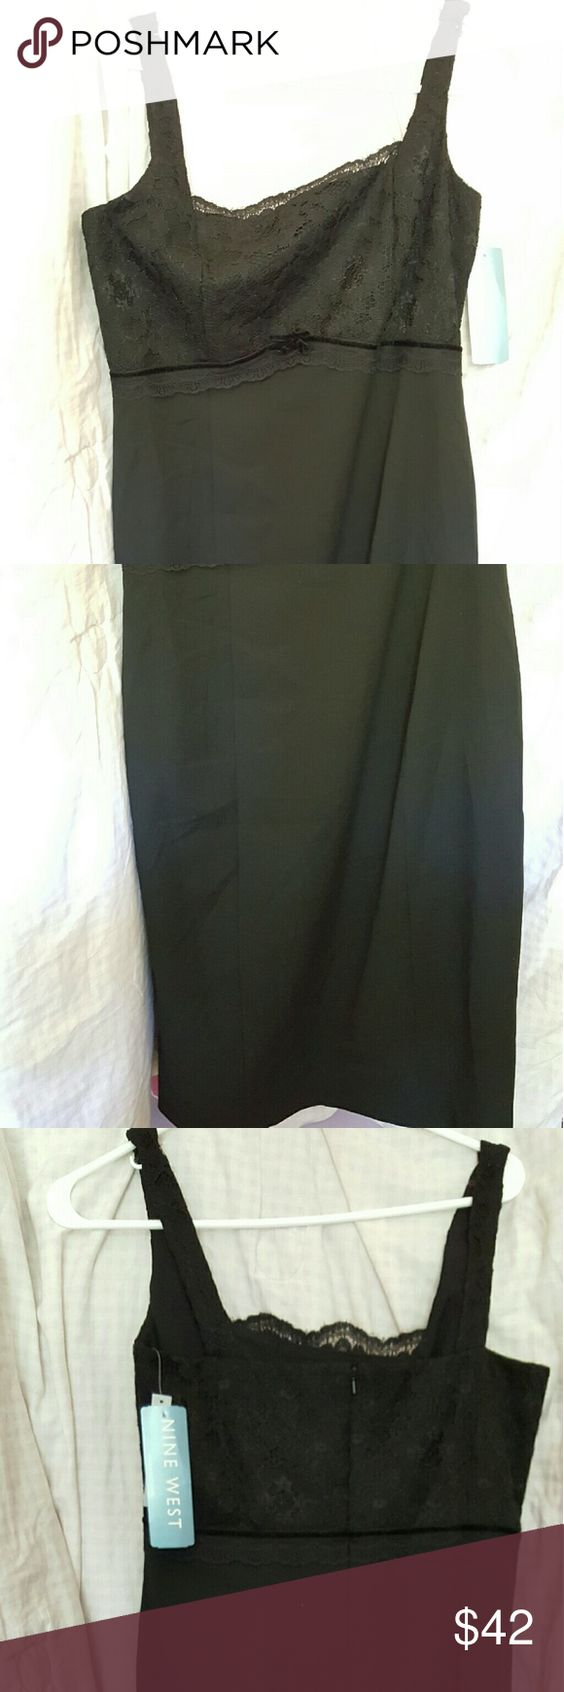 New Nine West Dress -New Dress -Never worn -Size: 8 -Looks Black  -For women Nine West Dresses Midi